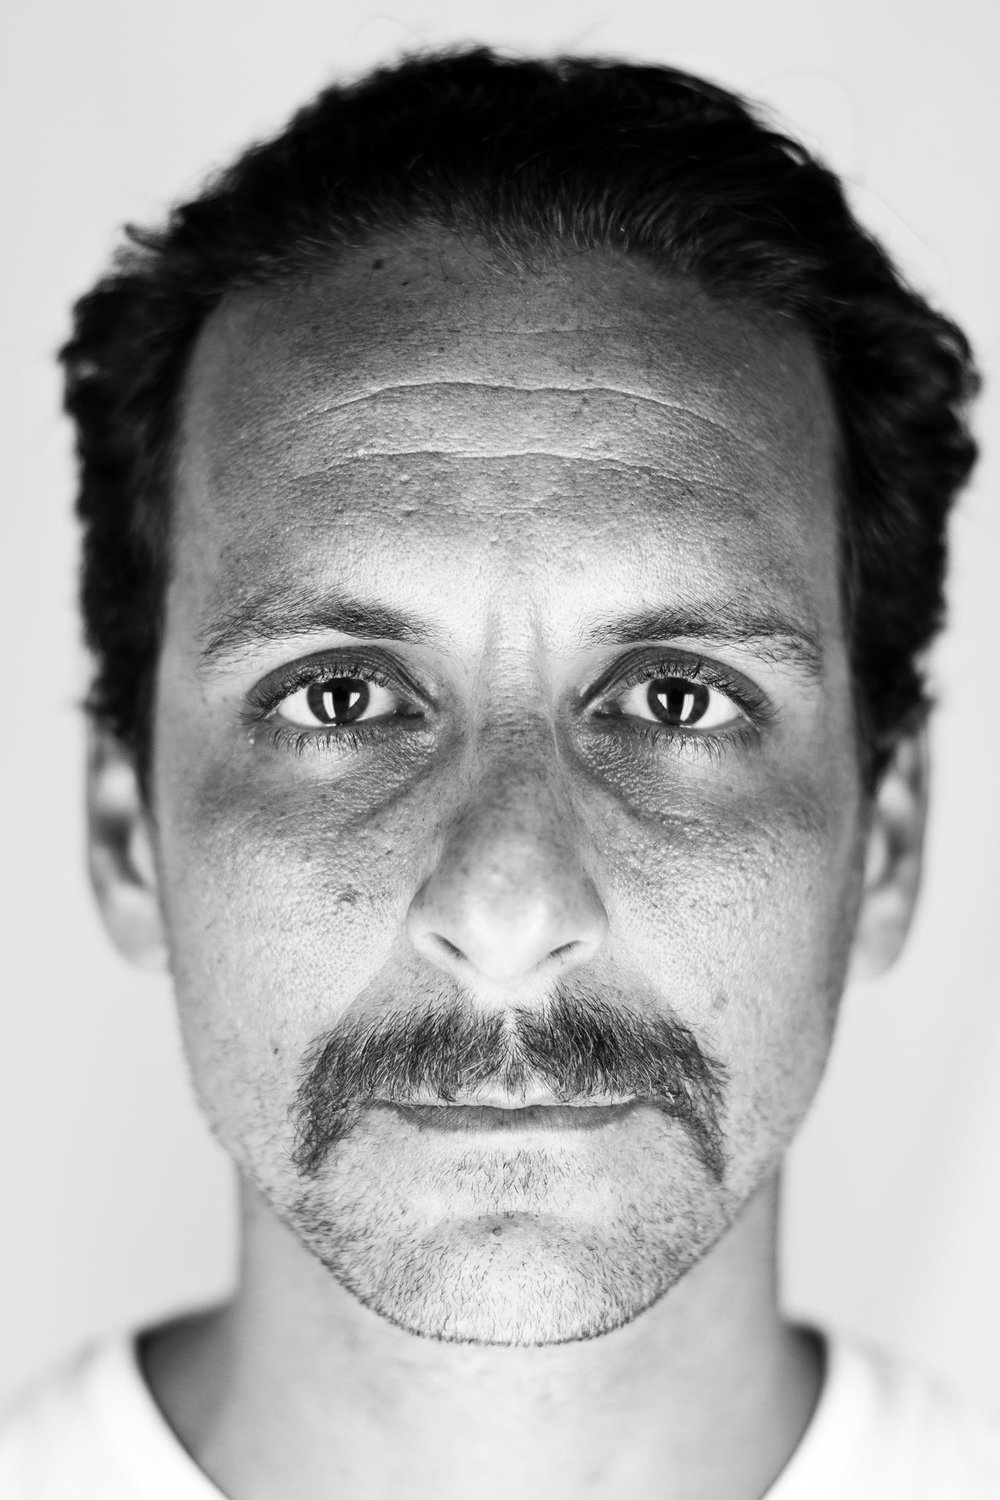 THOMAS FILIPKOWSKI, OR TOM FLIP AS HE IS KNOWN LOCALLY, CAME TO KEY WEST FROM NEW JERSEY ABOUT 15 YEARS AGO, AND BUILT HIS PHOTOGRAPHY BUSINESSES WITH AN ARTISTIC BLACK AND WHITE STYLE AND A GIFT FOR CONNECTING WITH PEOPLE THROUGH PORTRAITURE. PHOTO COPYRIGHT © TOM FLIP